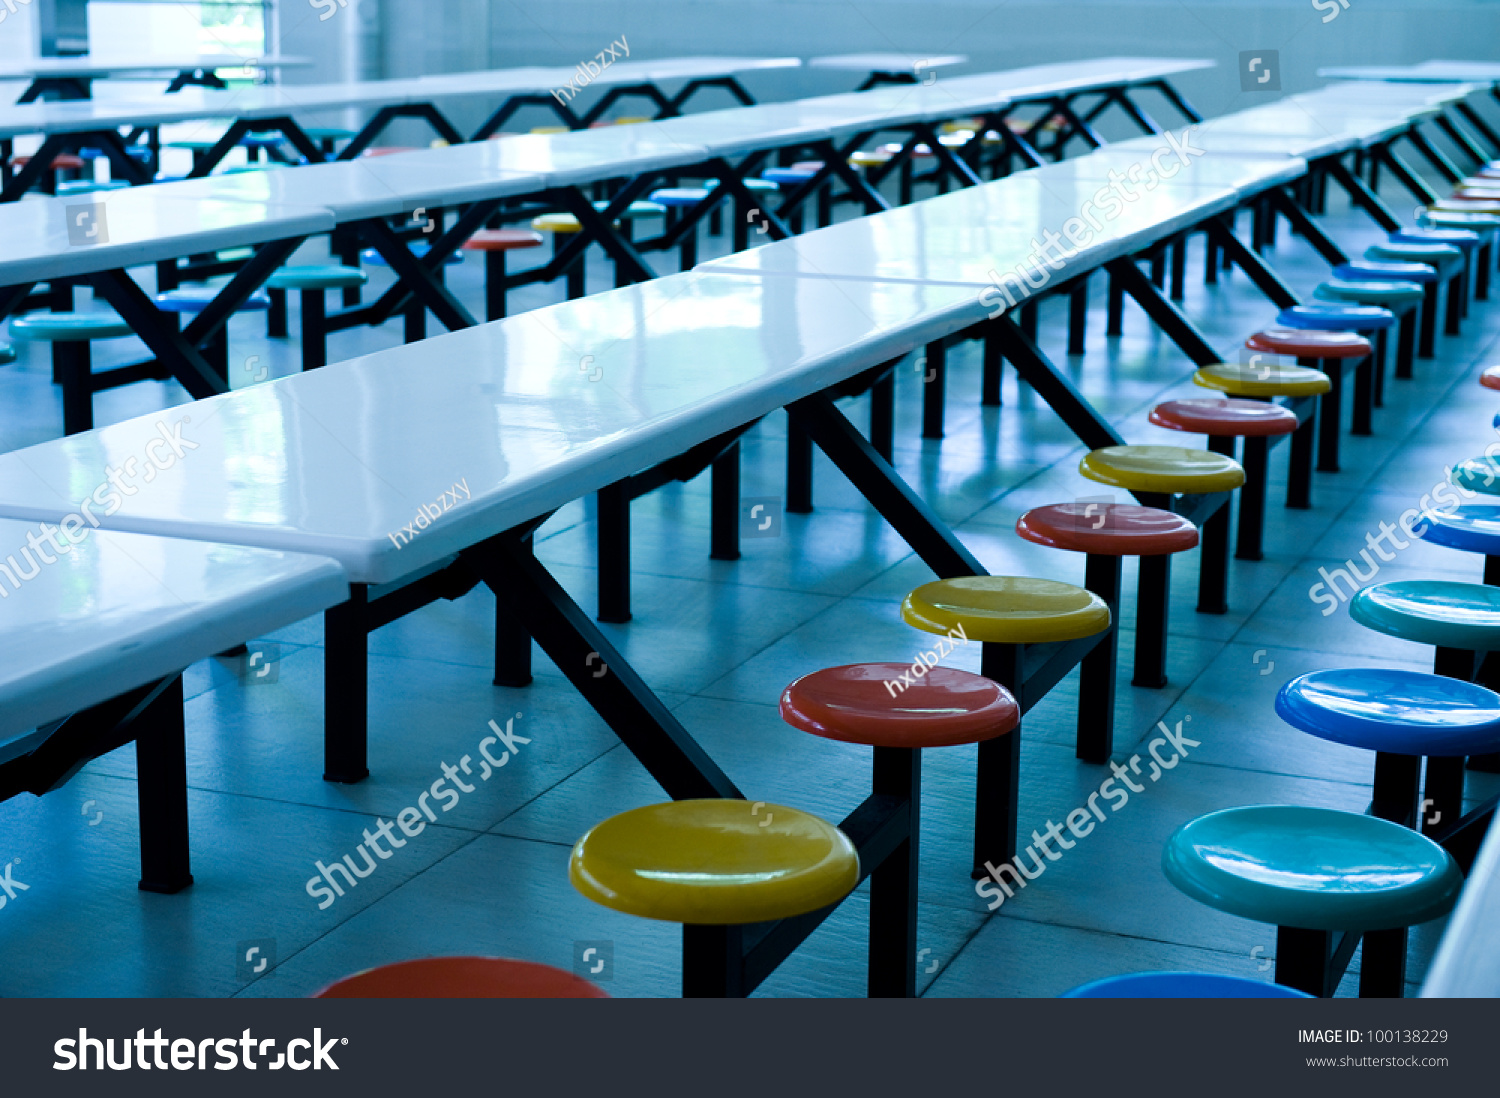 Clean cafeteria tables - Save To A Lightbox